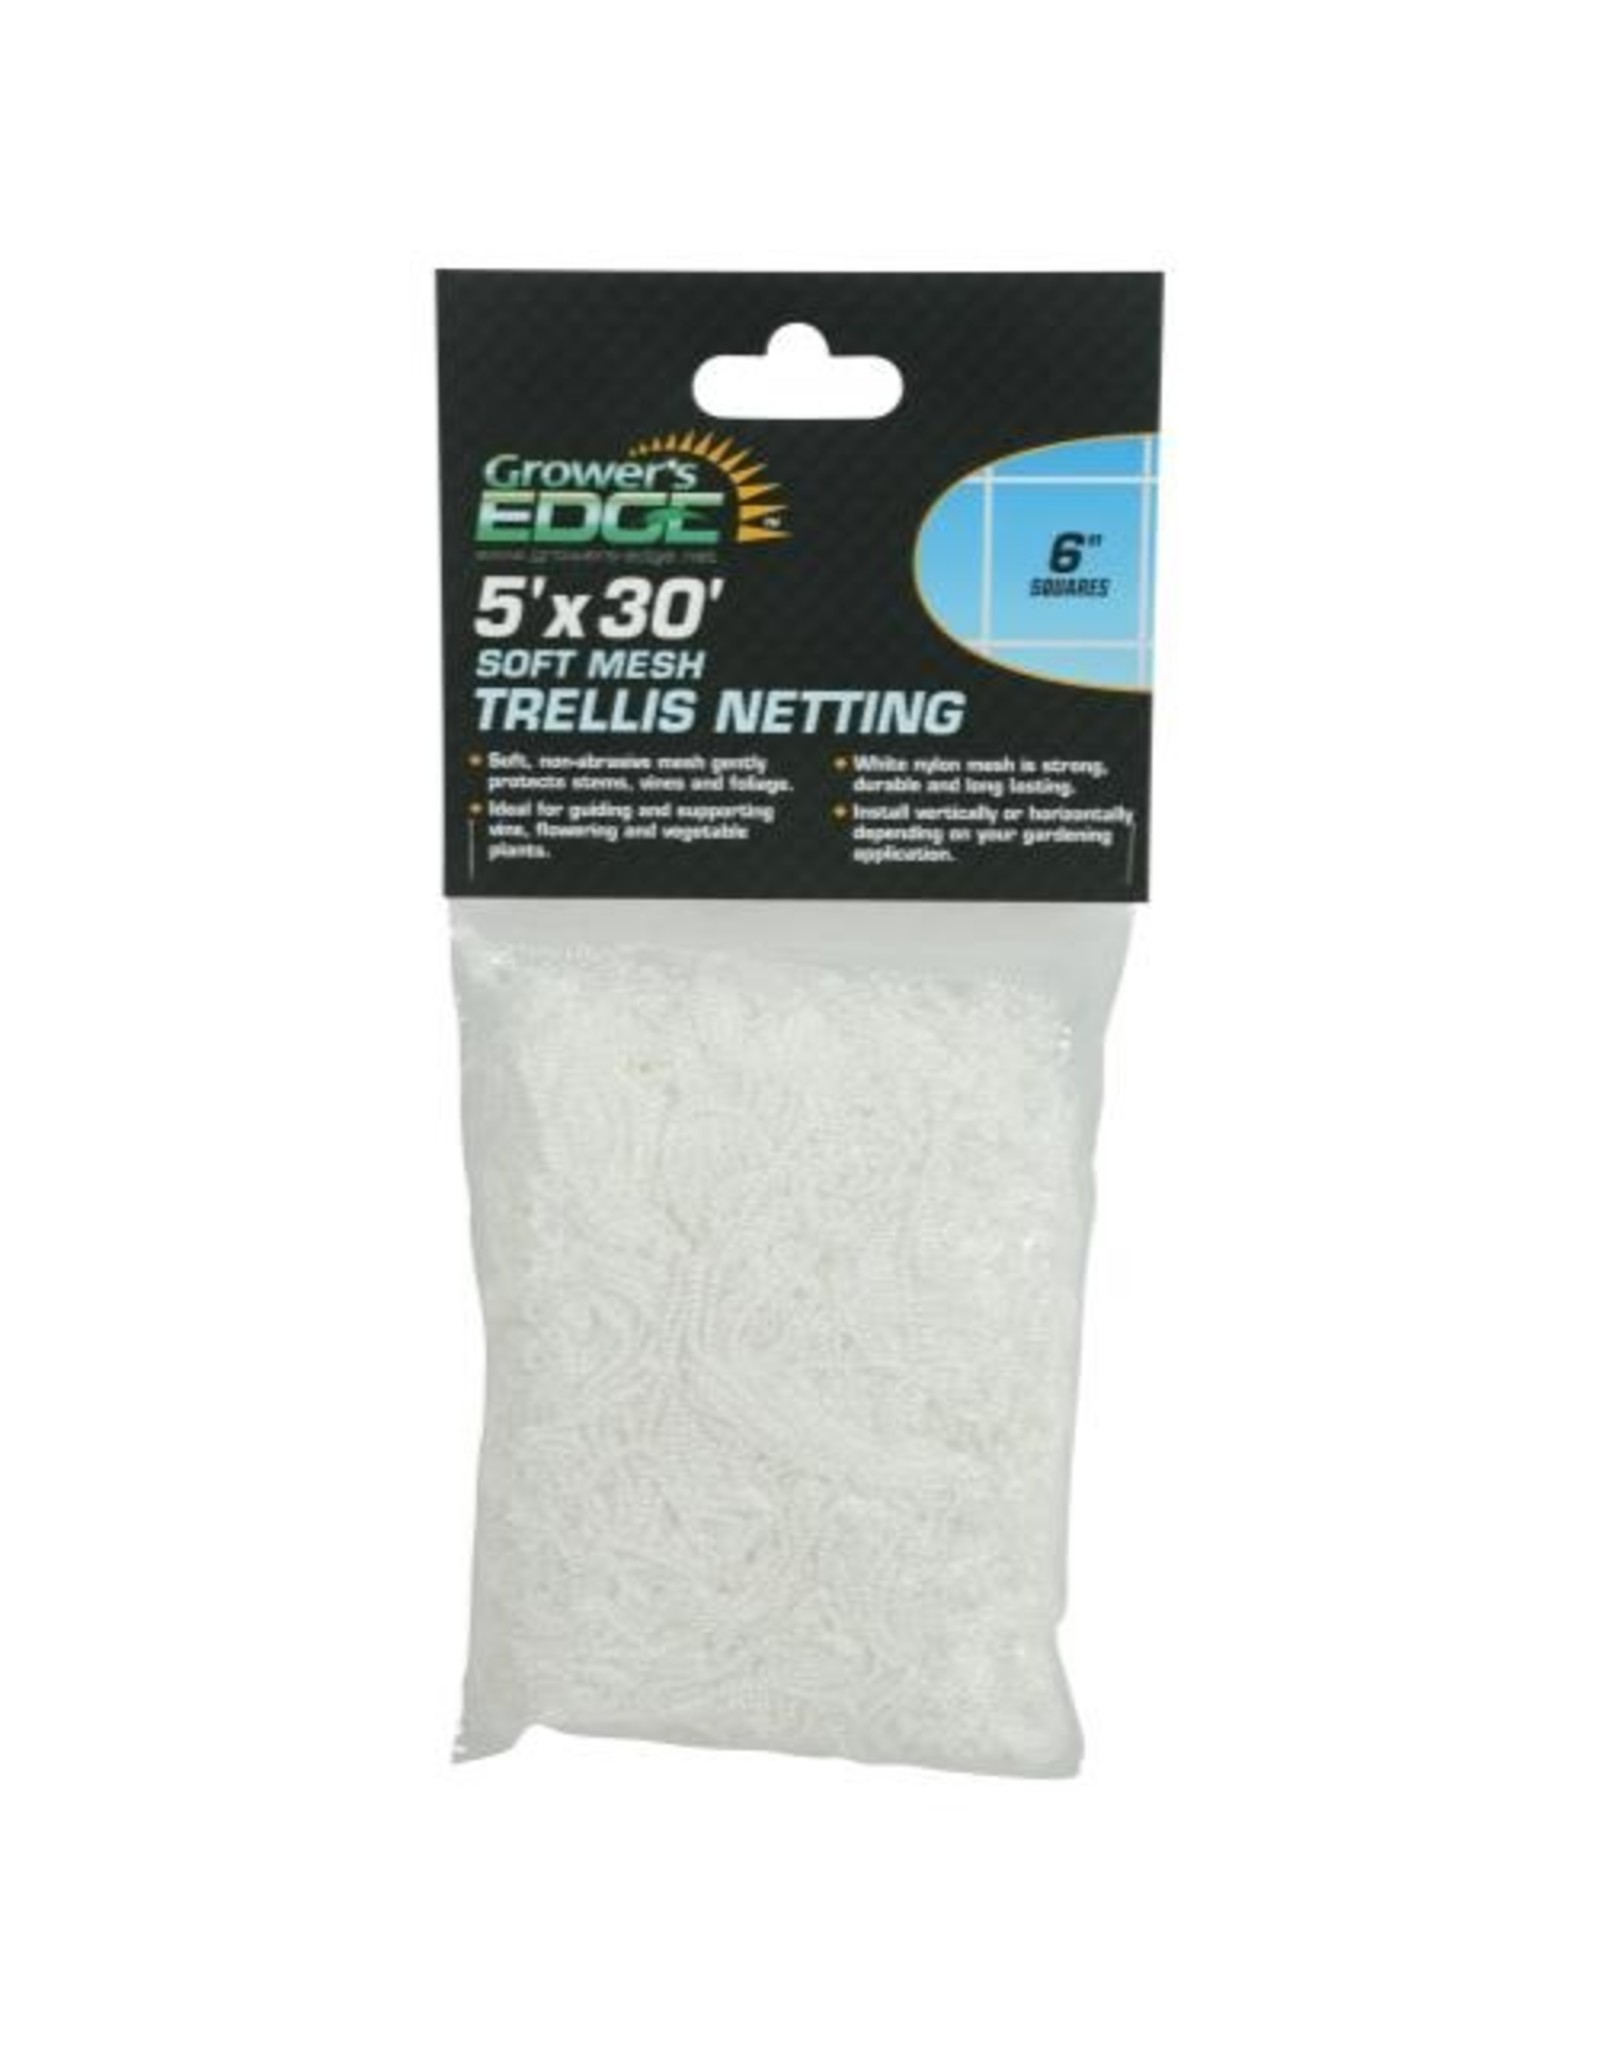 Growers Edge Soft Mesh Trellis Netting 5 ft x 30 ft w/ 6 in Squares